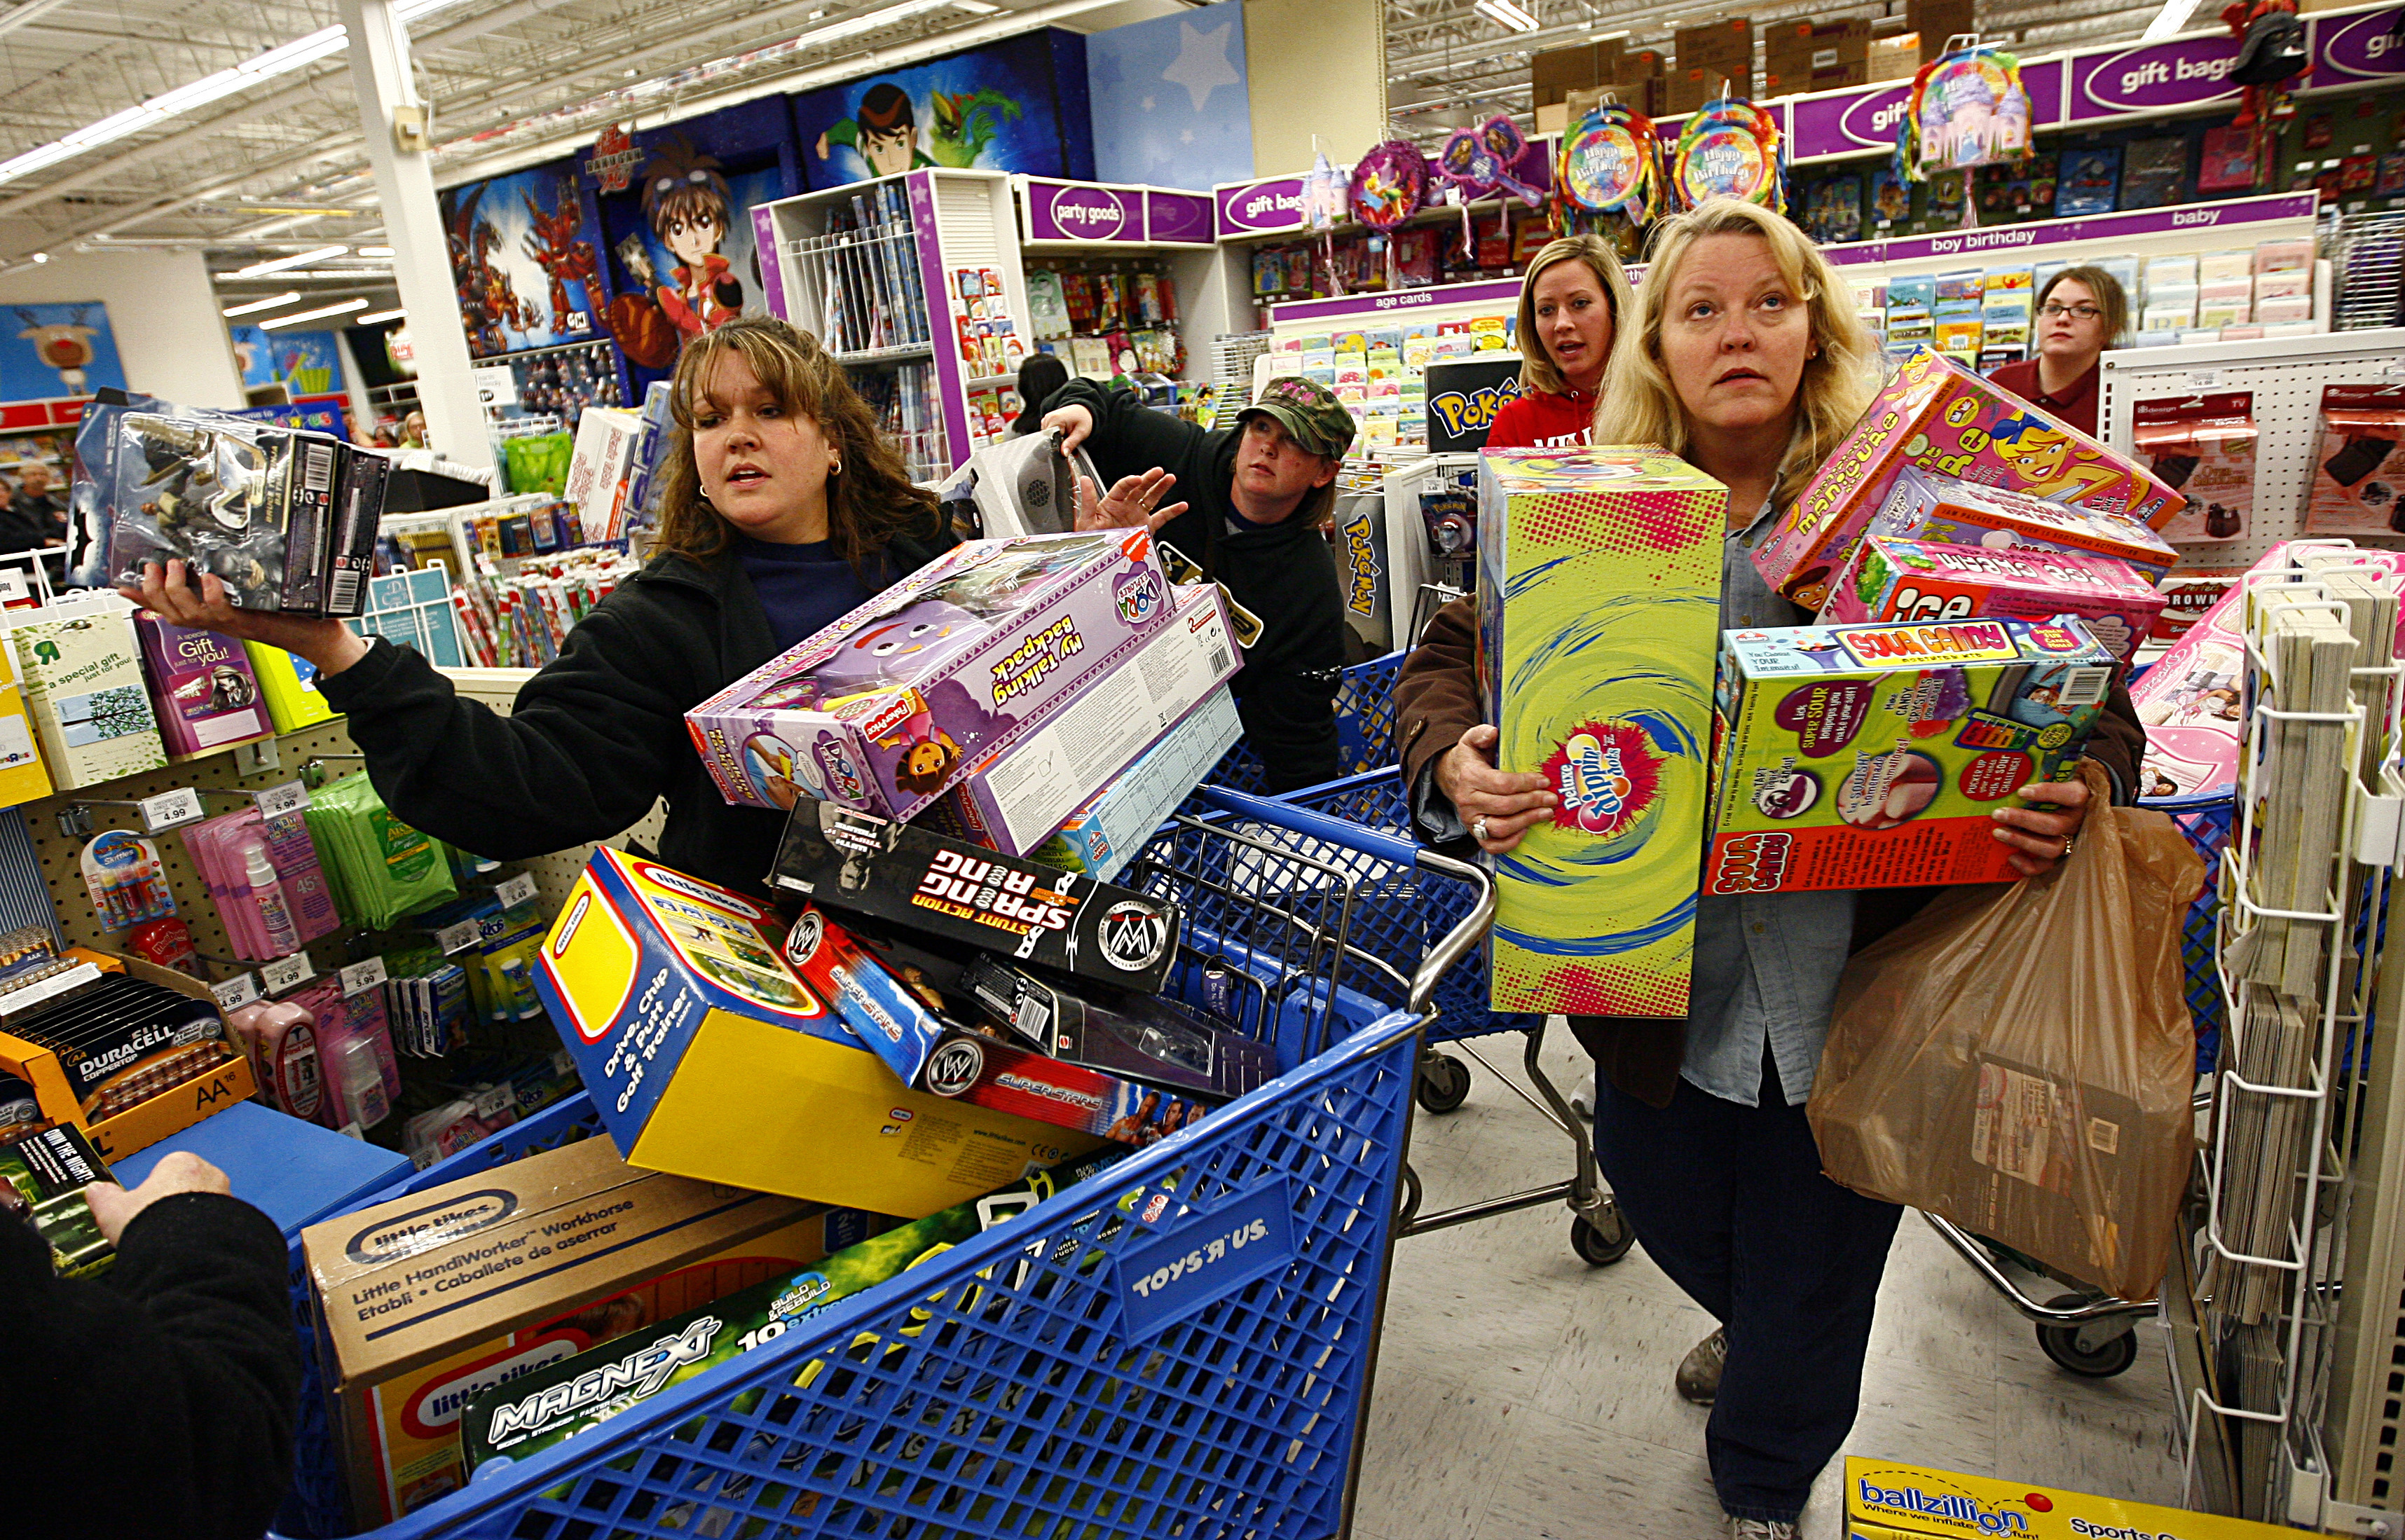 Black Friday Shop Black Friday S Most Dangerous Shopping Moments Is The Discount